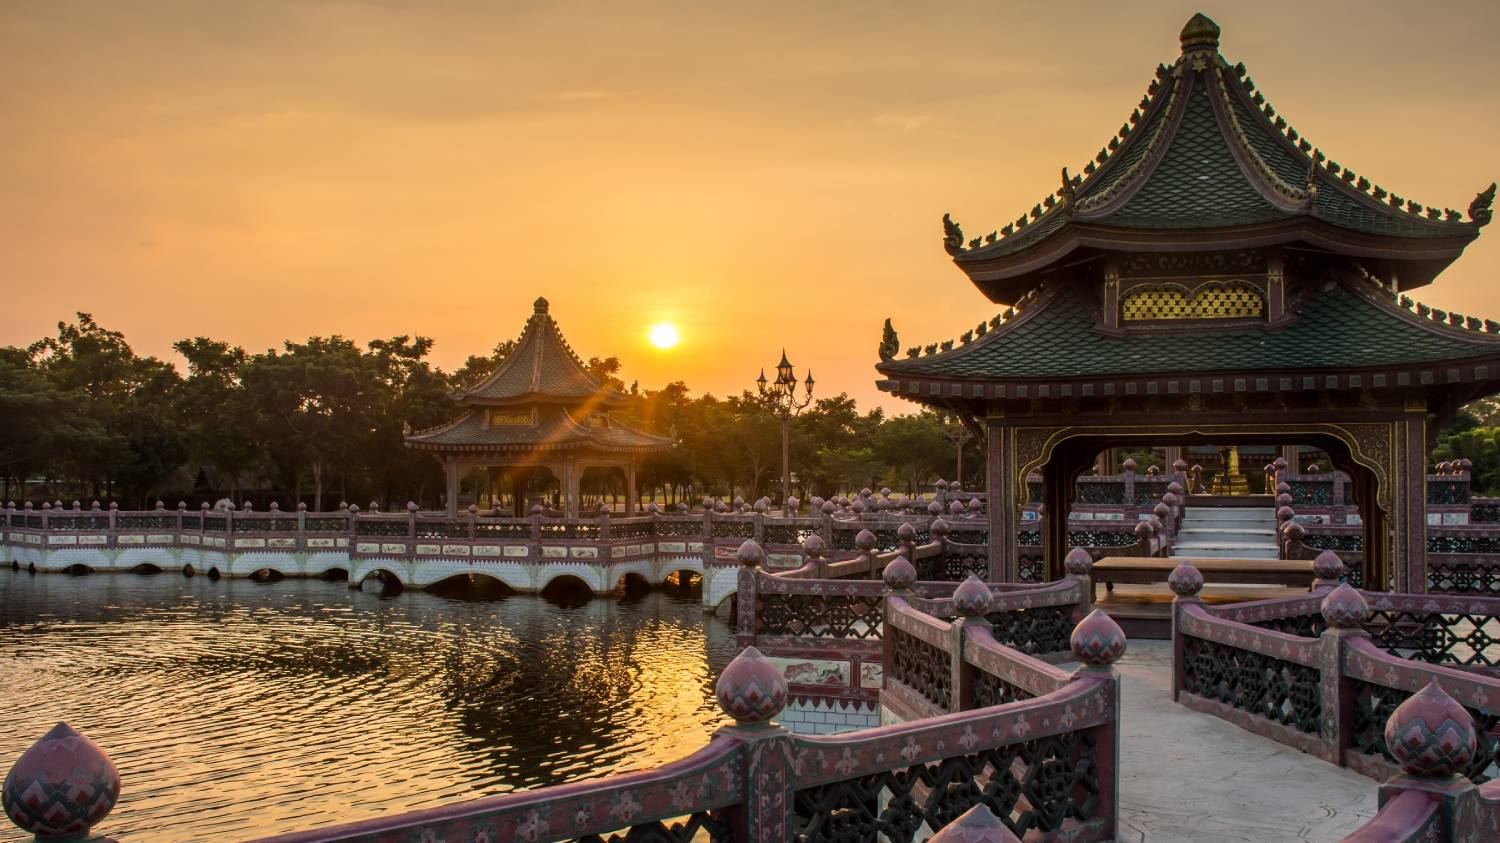 Beijing - The Best Places To Visit In China